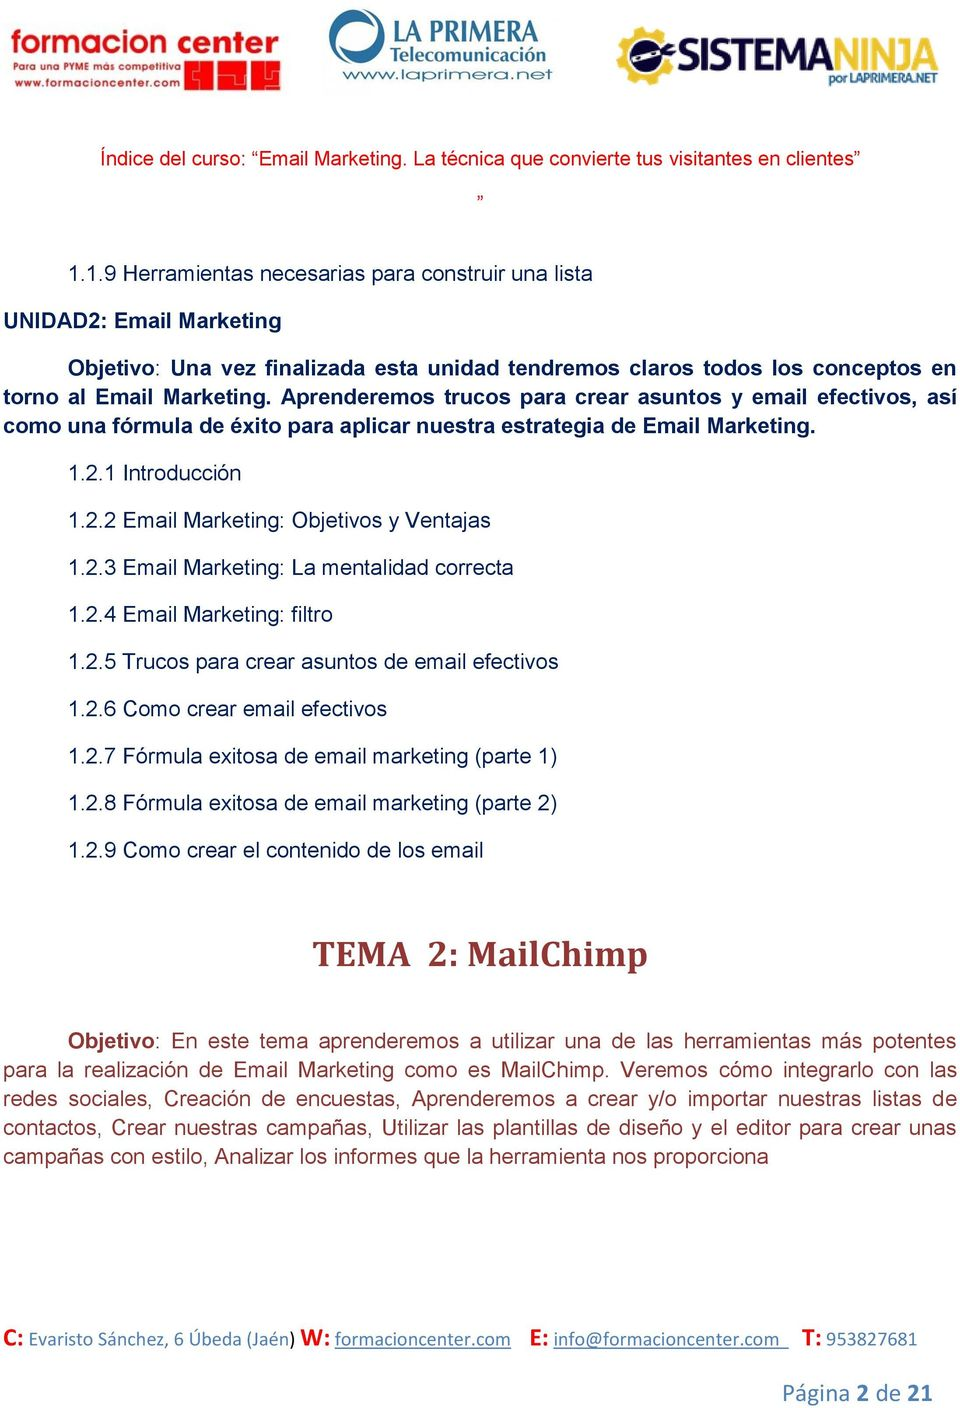 2.3 Email Marketing: La mentalidad correcta 1.2.4 Email Marketing: filtro 1.2.5 Trucos para crear asuntos de email efectivos 1.2.6 Como crear email efectivos 1.2.7 Fórmula exitosa de email marketing (parte 1) 1.